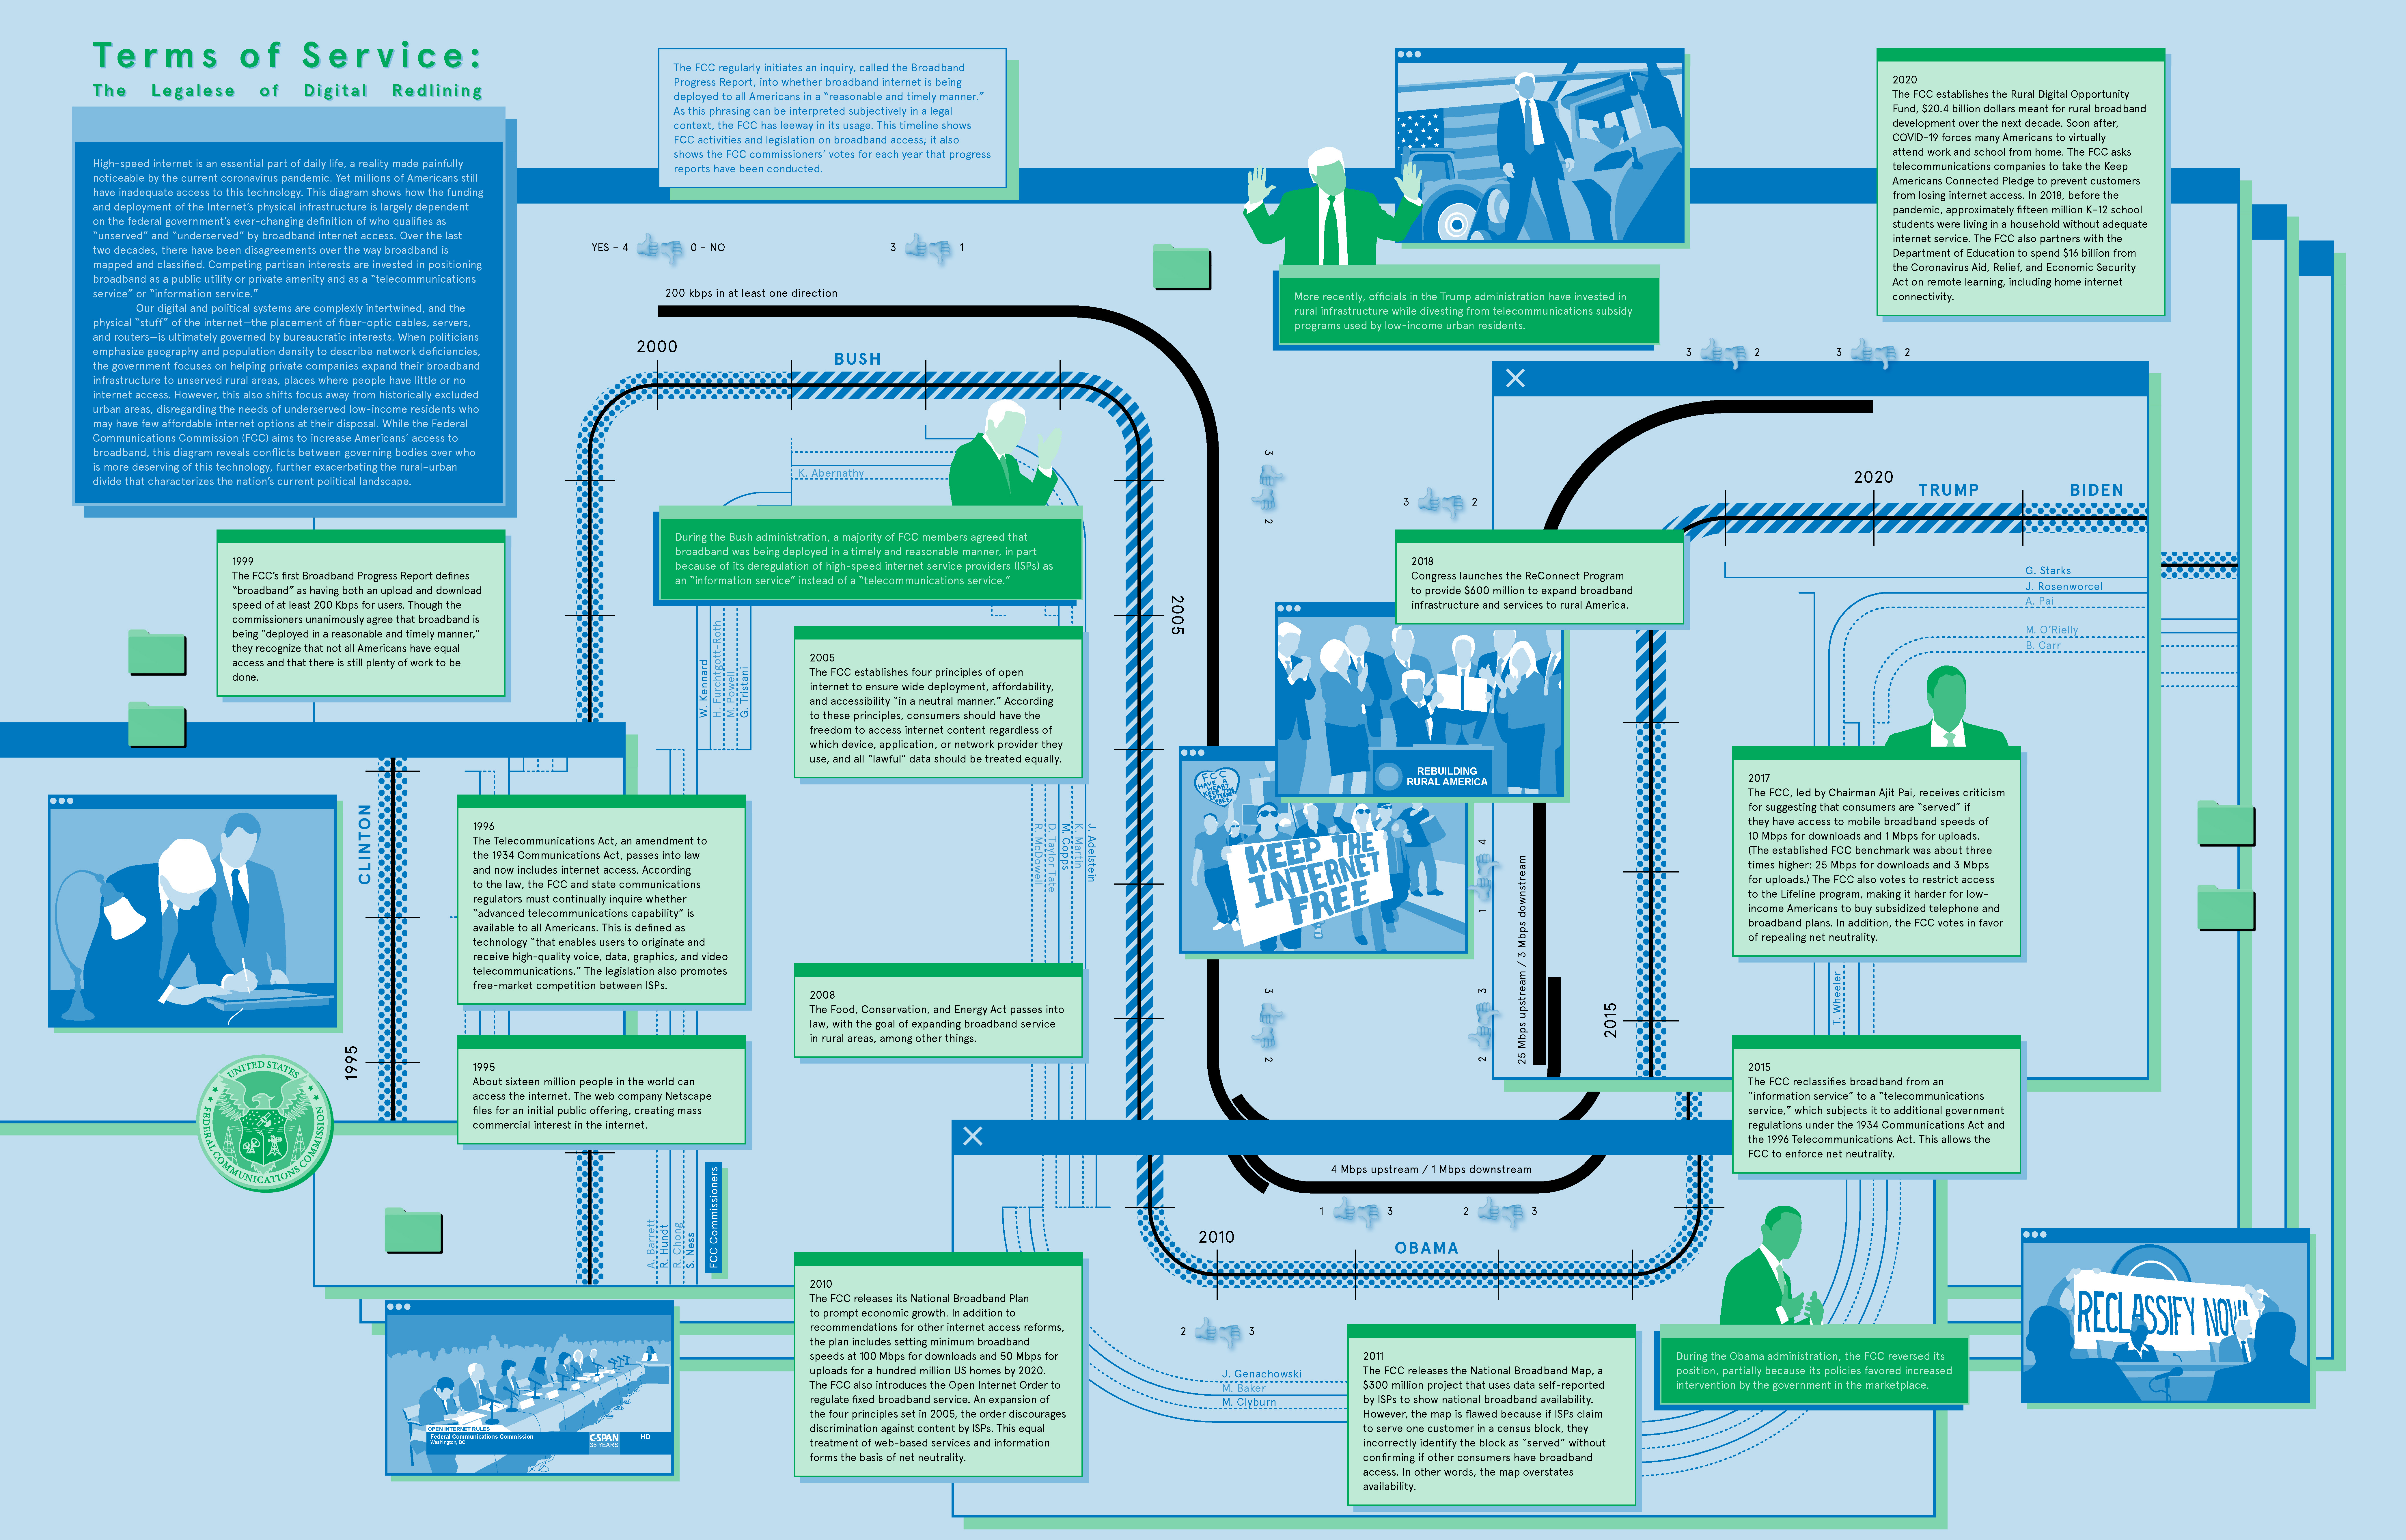 large graphic laying explaining timeline of funding and deployment of internet broadband infrastructure across the United States.